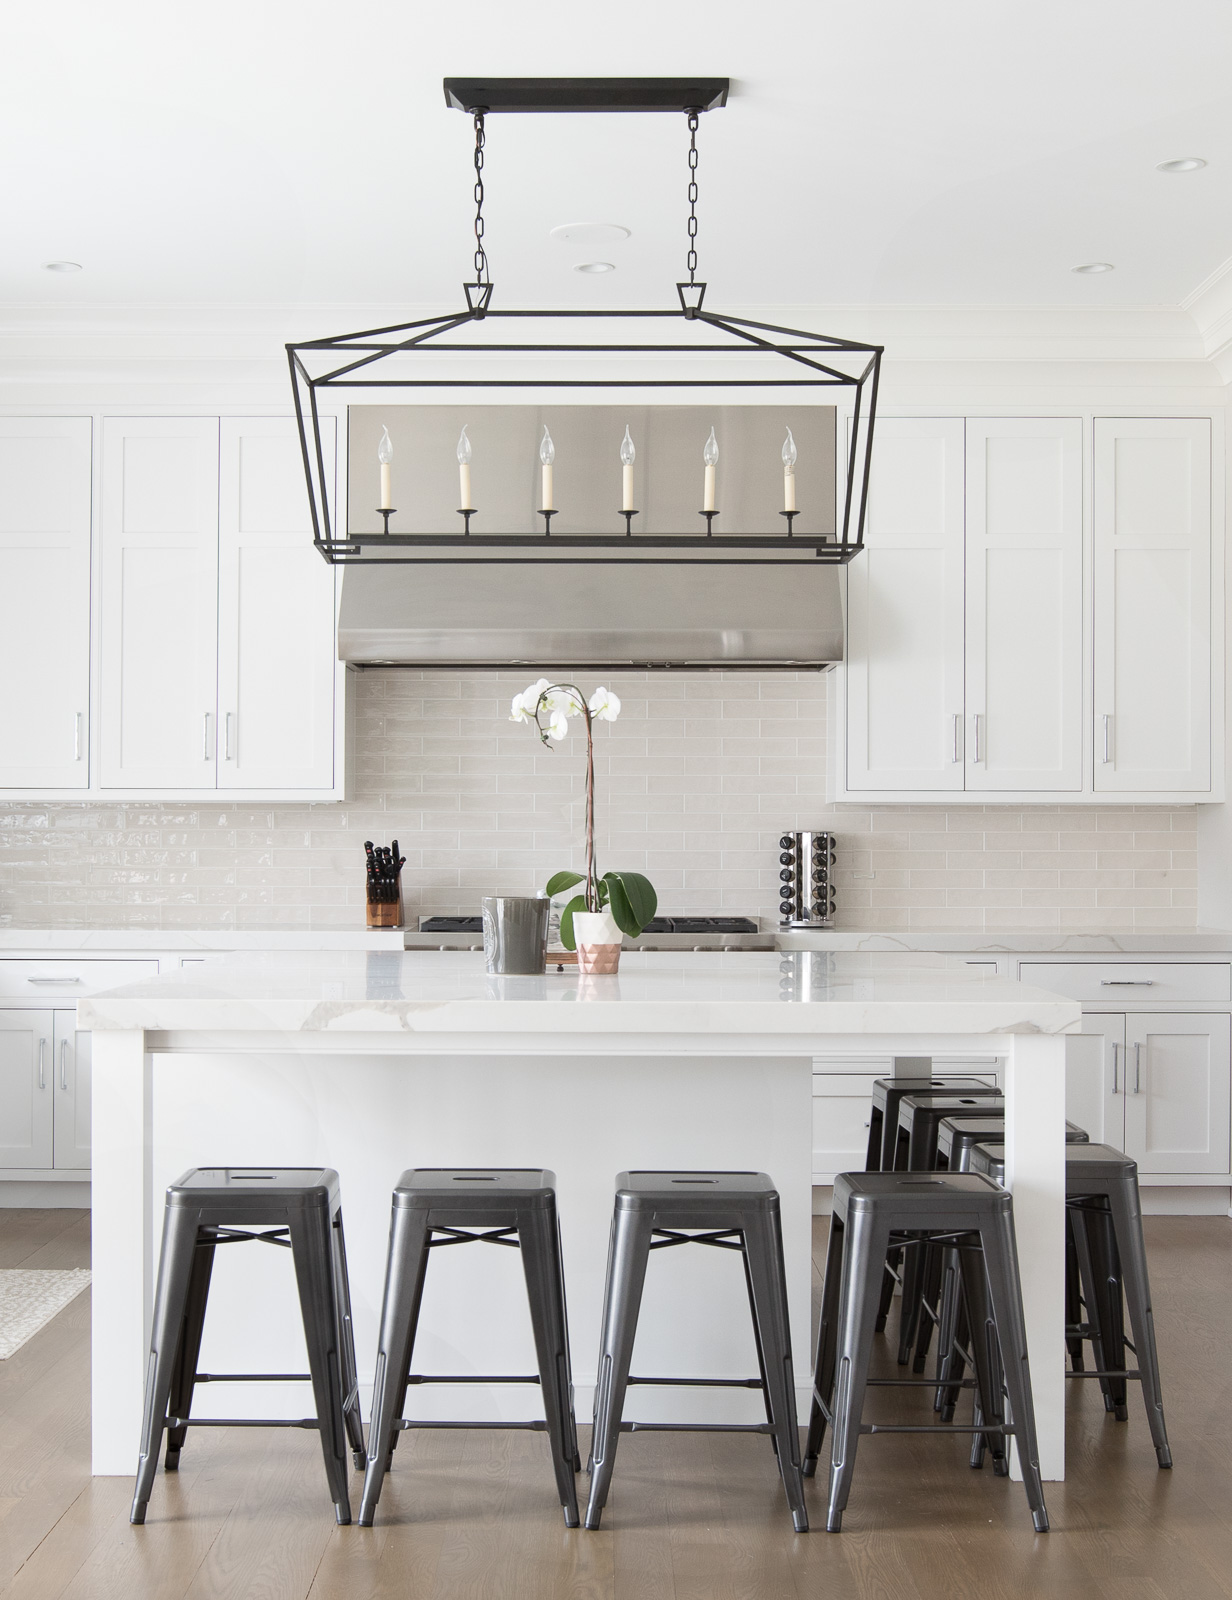 White kitchen with black stools and stainless steel pendant.